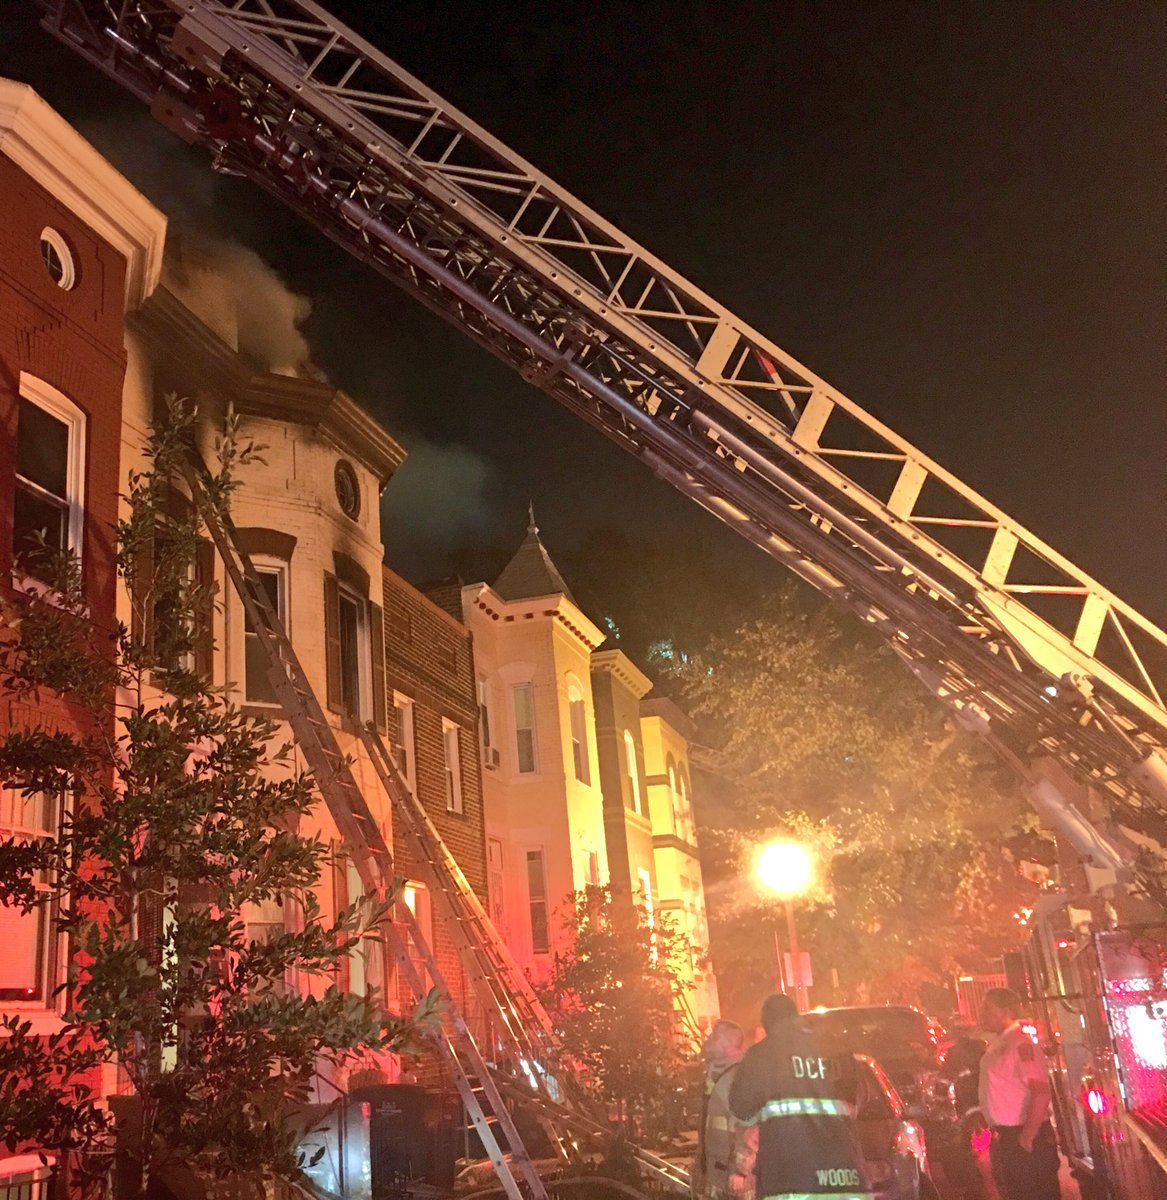 The fire struck two rowhouses, leaving eight residents displaced. No one was injured. (Courtesy D.C. Fire and EMS)